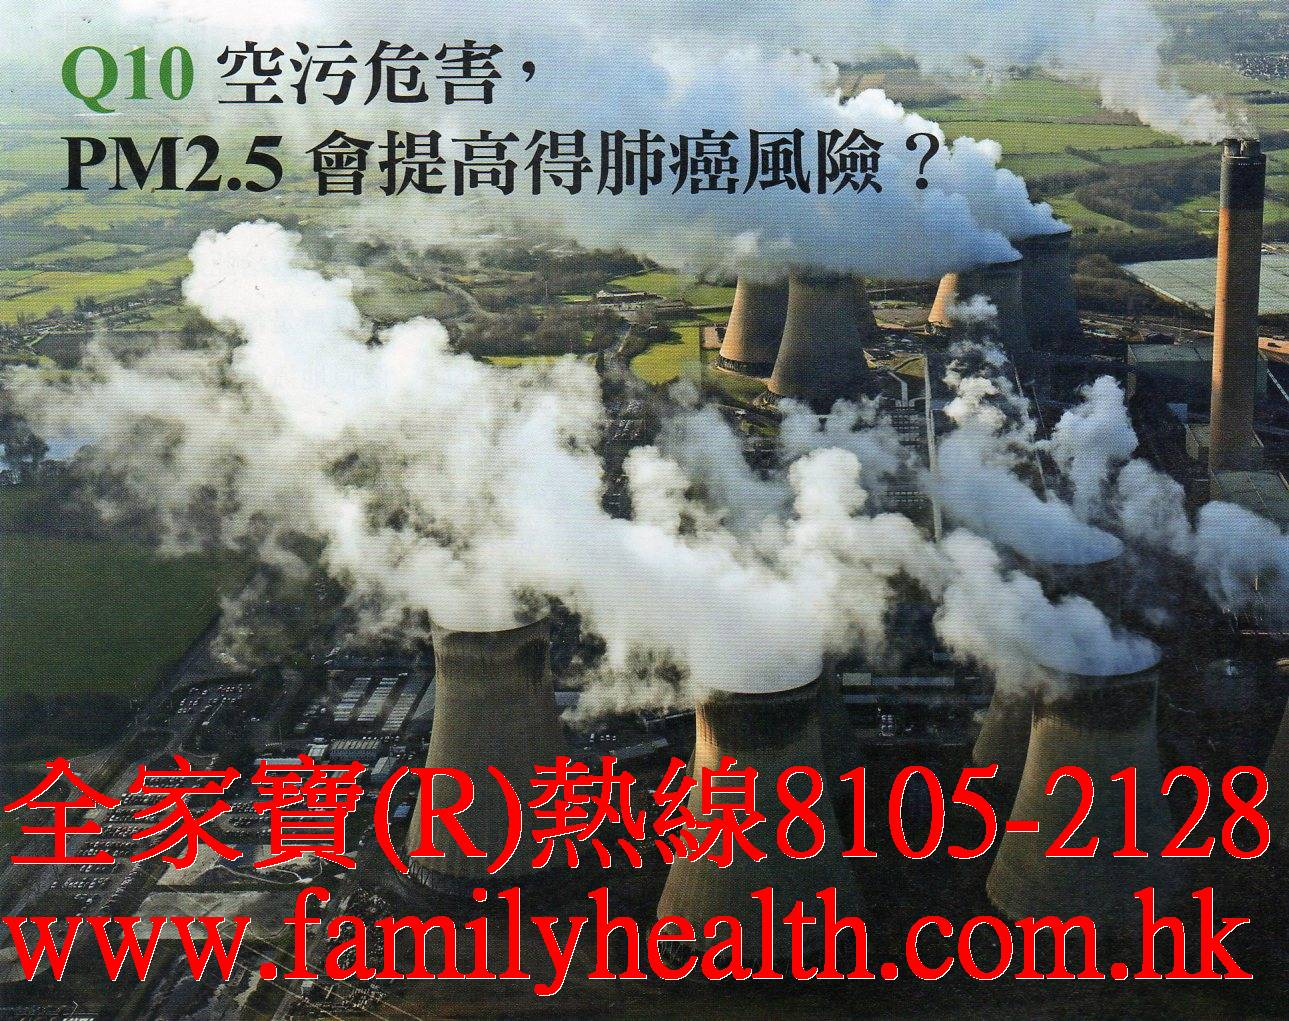 http://www.familyhealth.com.hk/files/full/1154_3.jpg